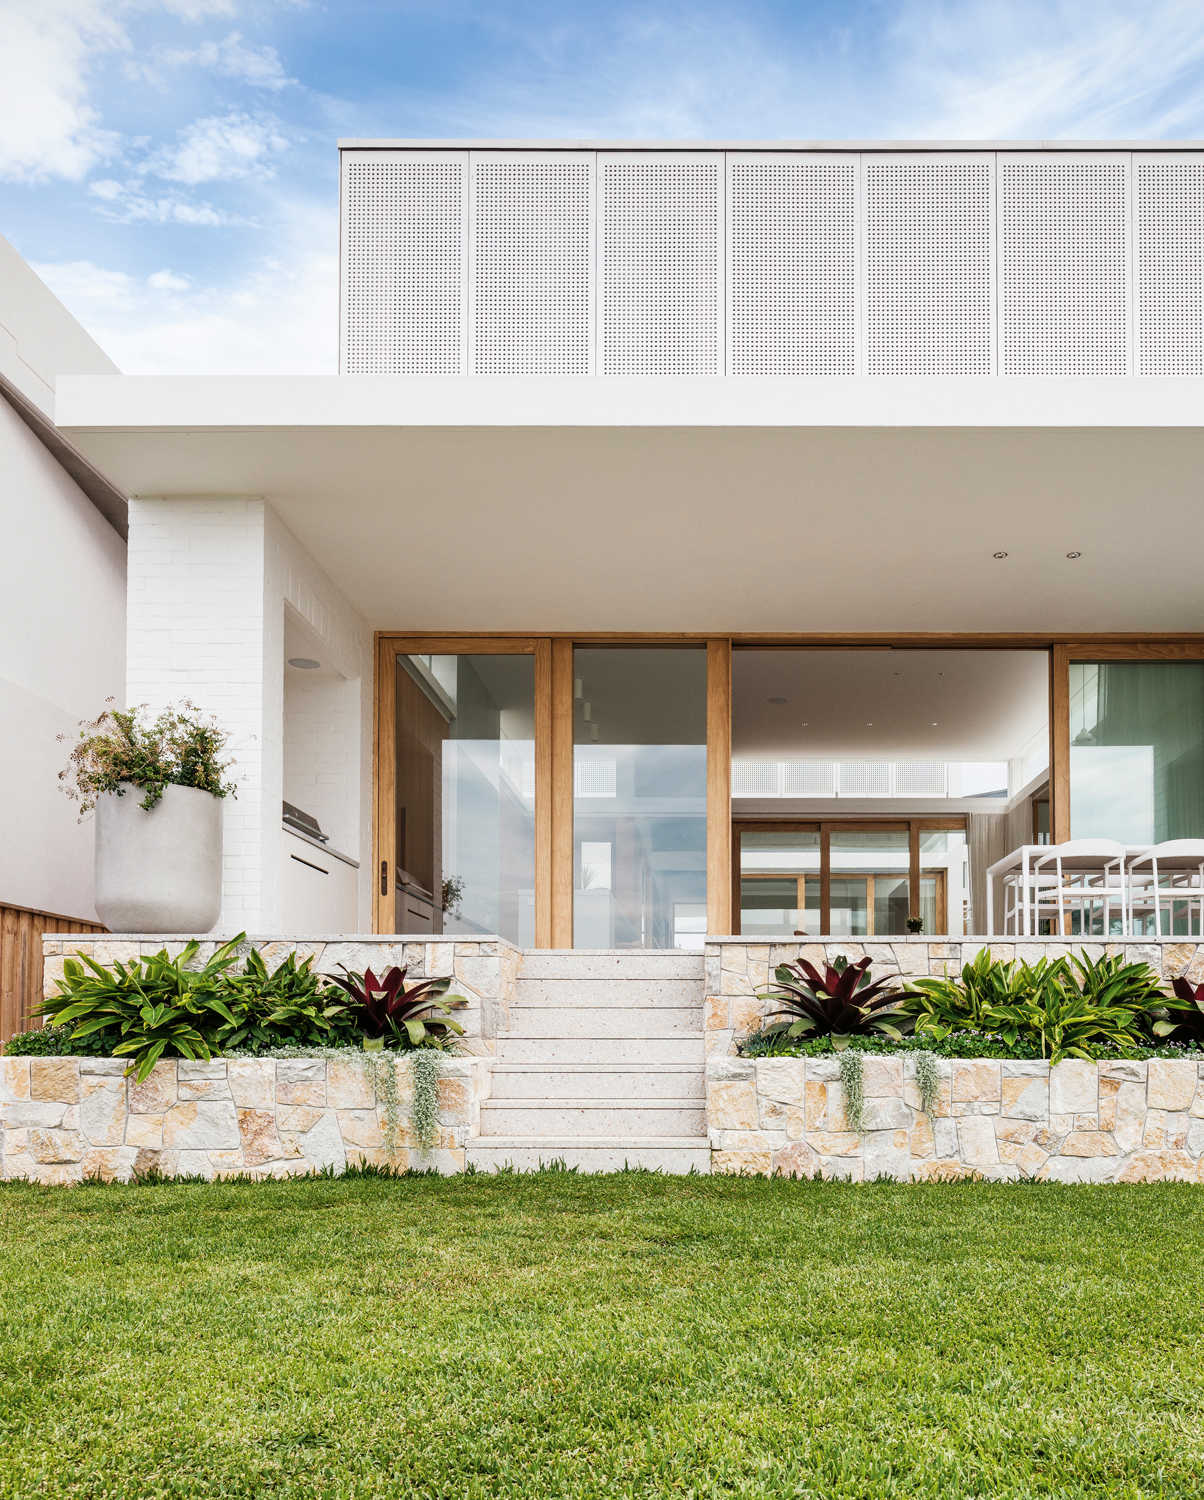 Coogee House II: a Sydney Grand Design